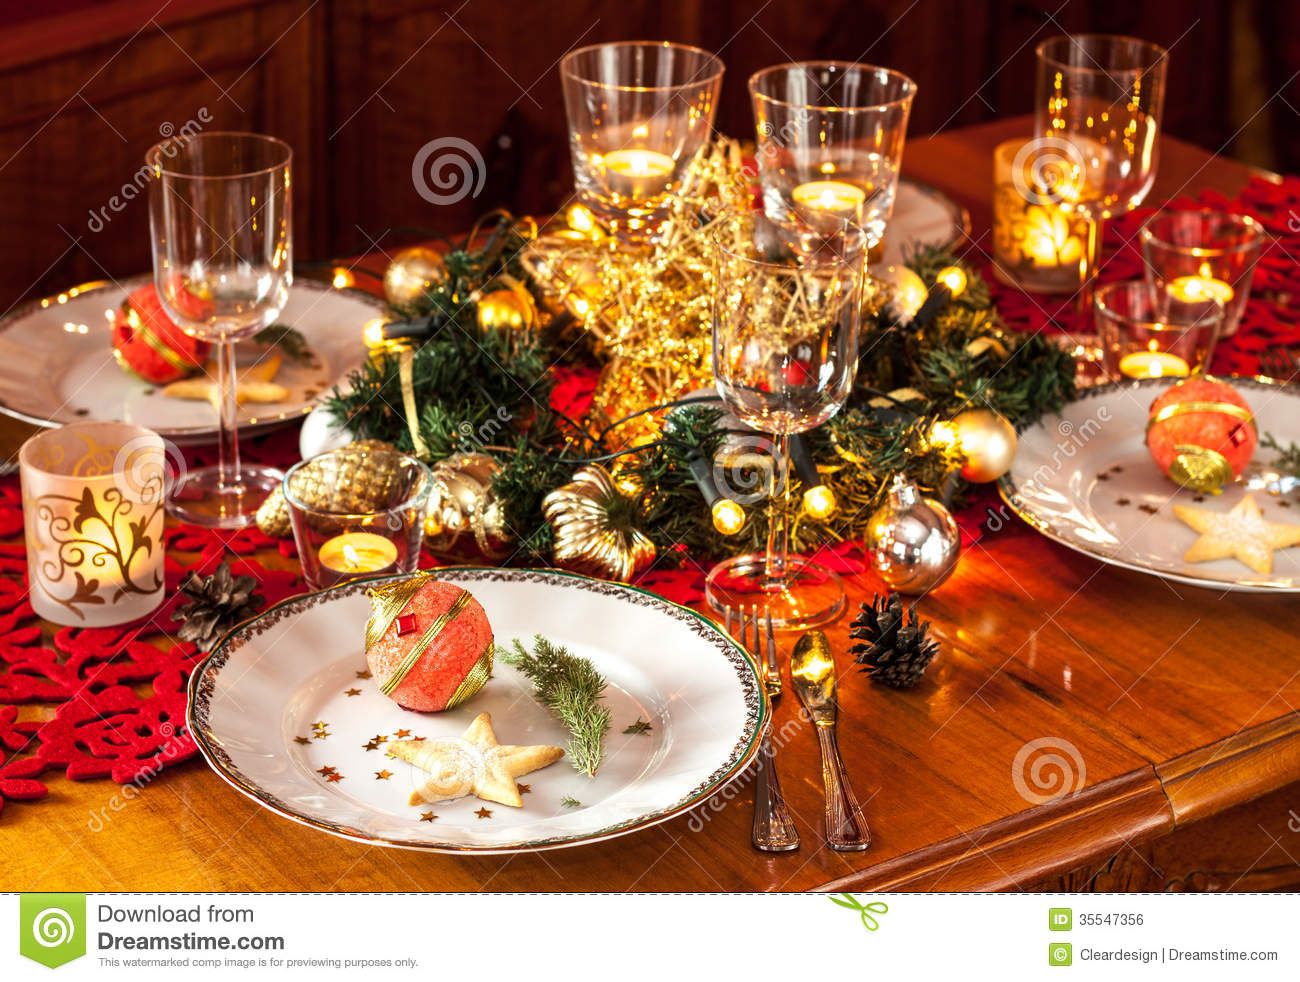 Christmas dinner table quotes quotesgram for Ideas for christmas dinner